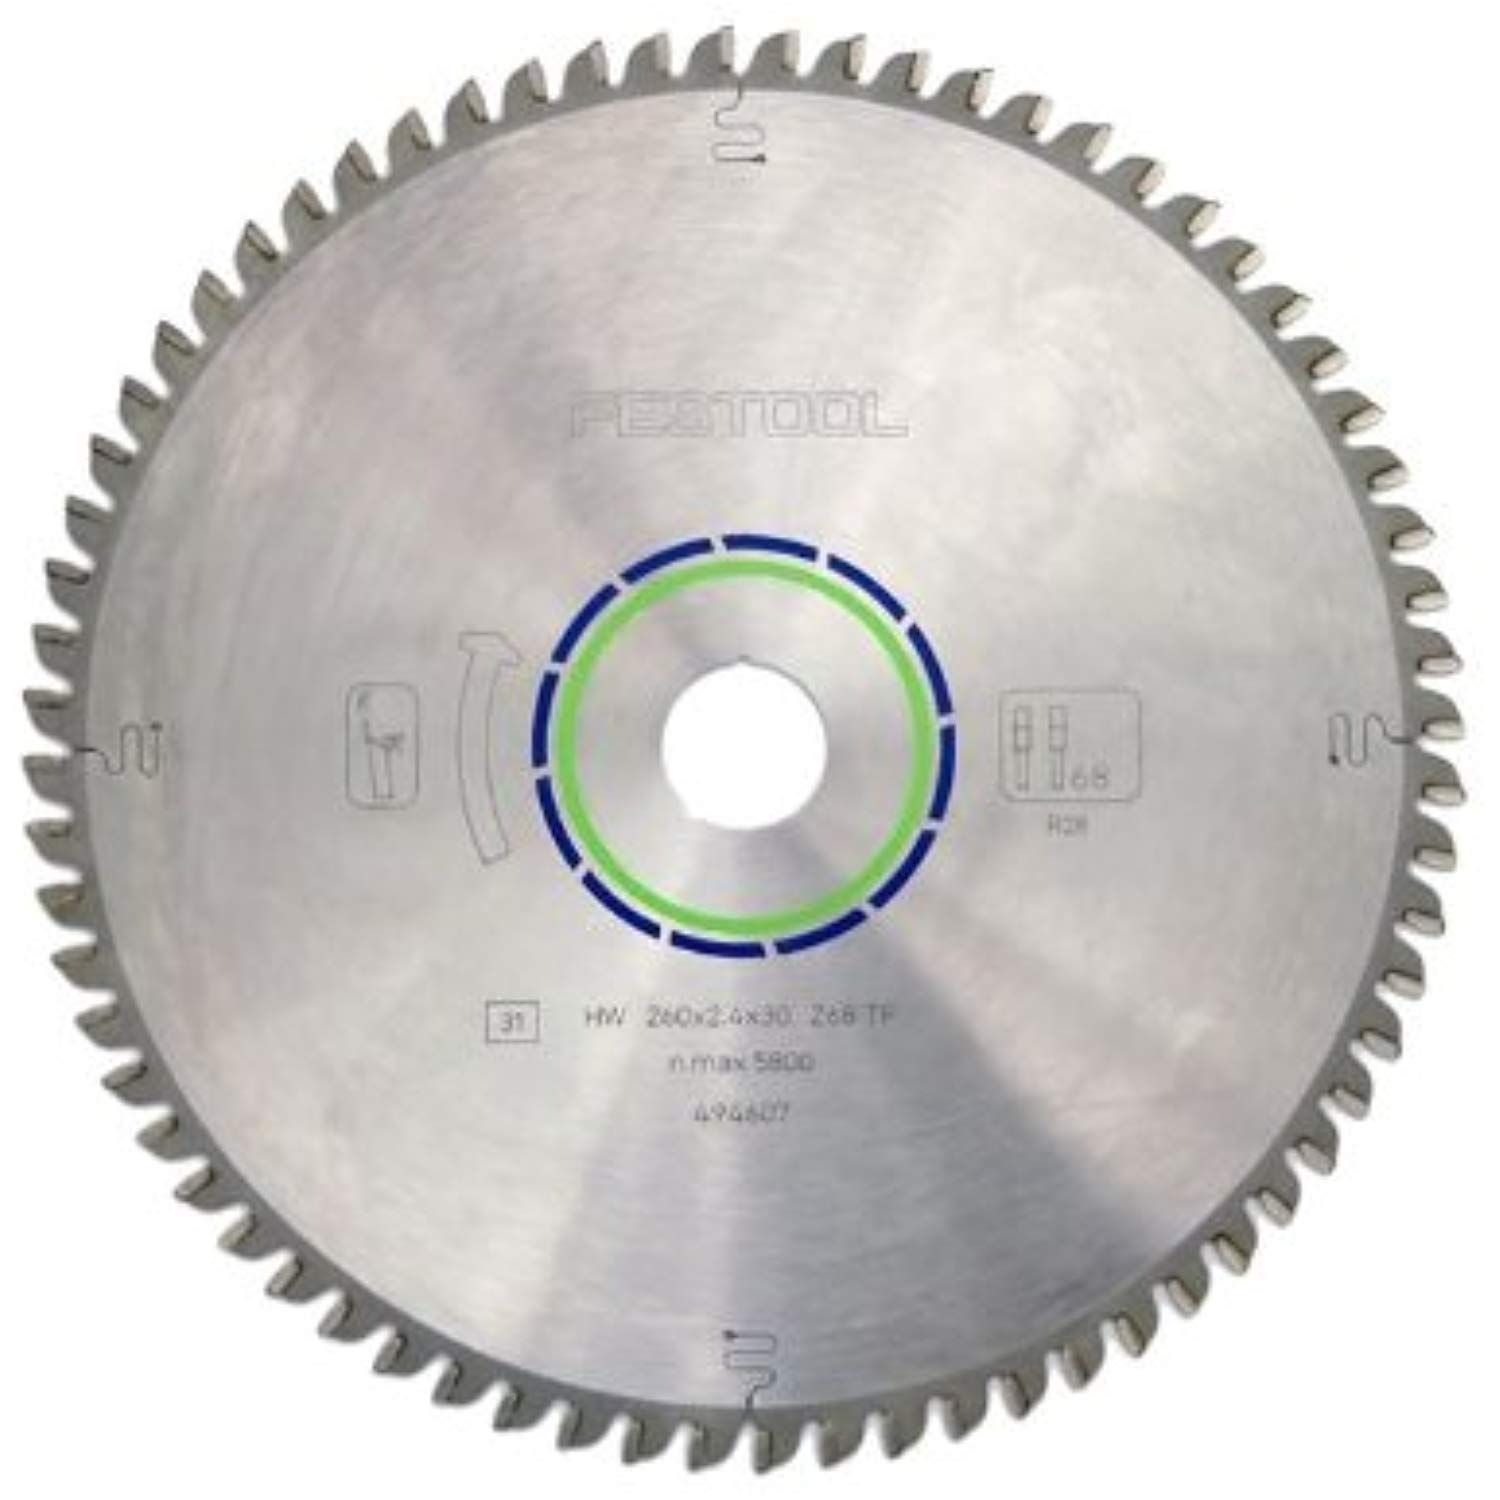 Festool 495386 Solid Surface Laminate Blade For Kapex Miter Saw 64 Tooth Learn More By Visiting The Image Link Festool Solid Surface Circular Saw Blades